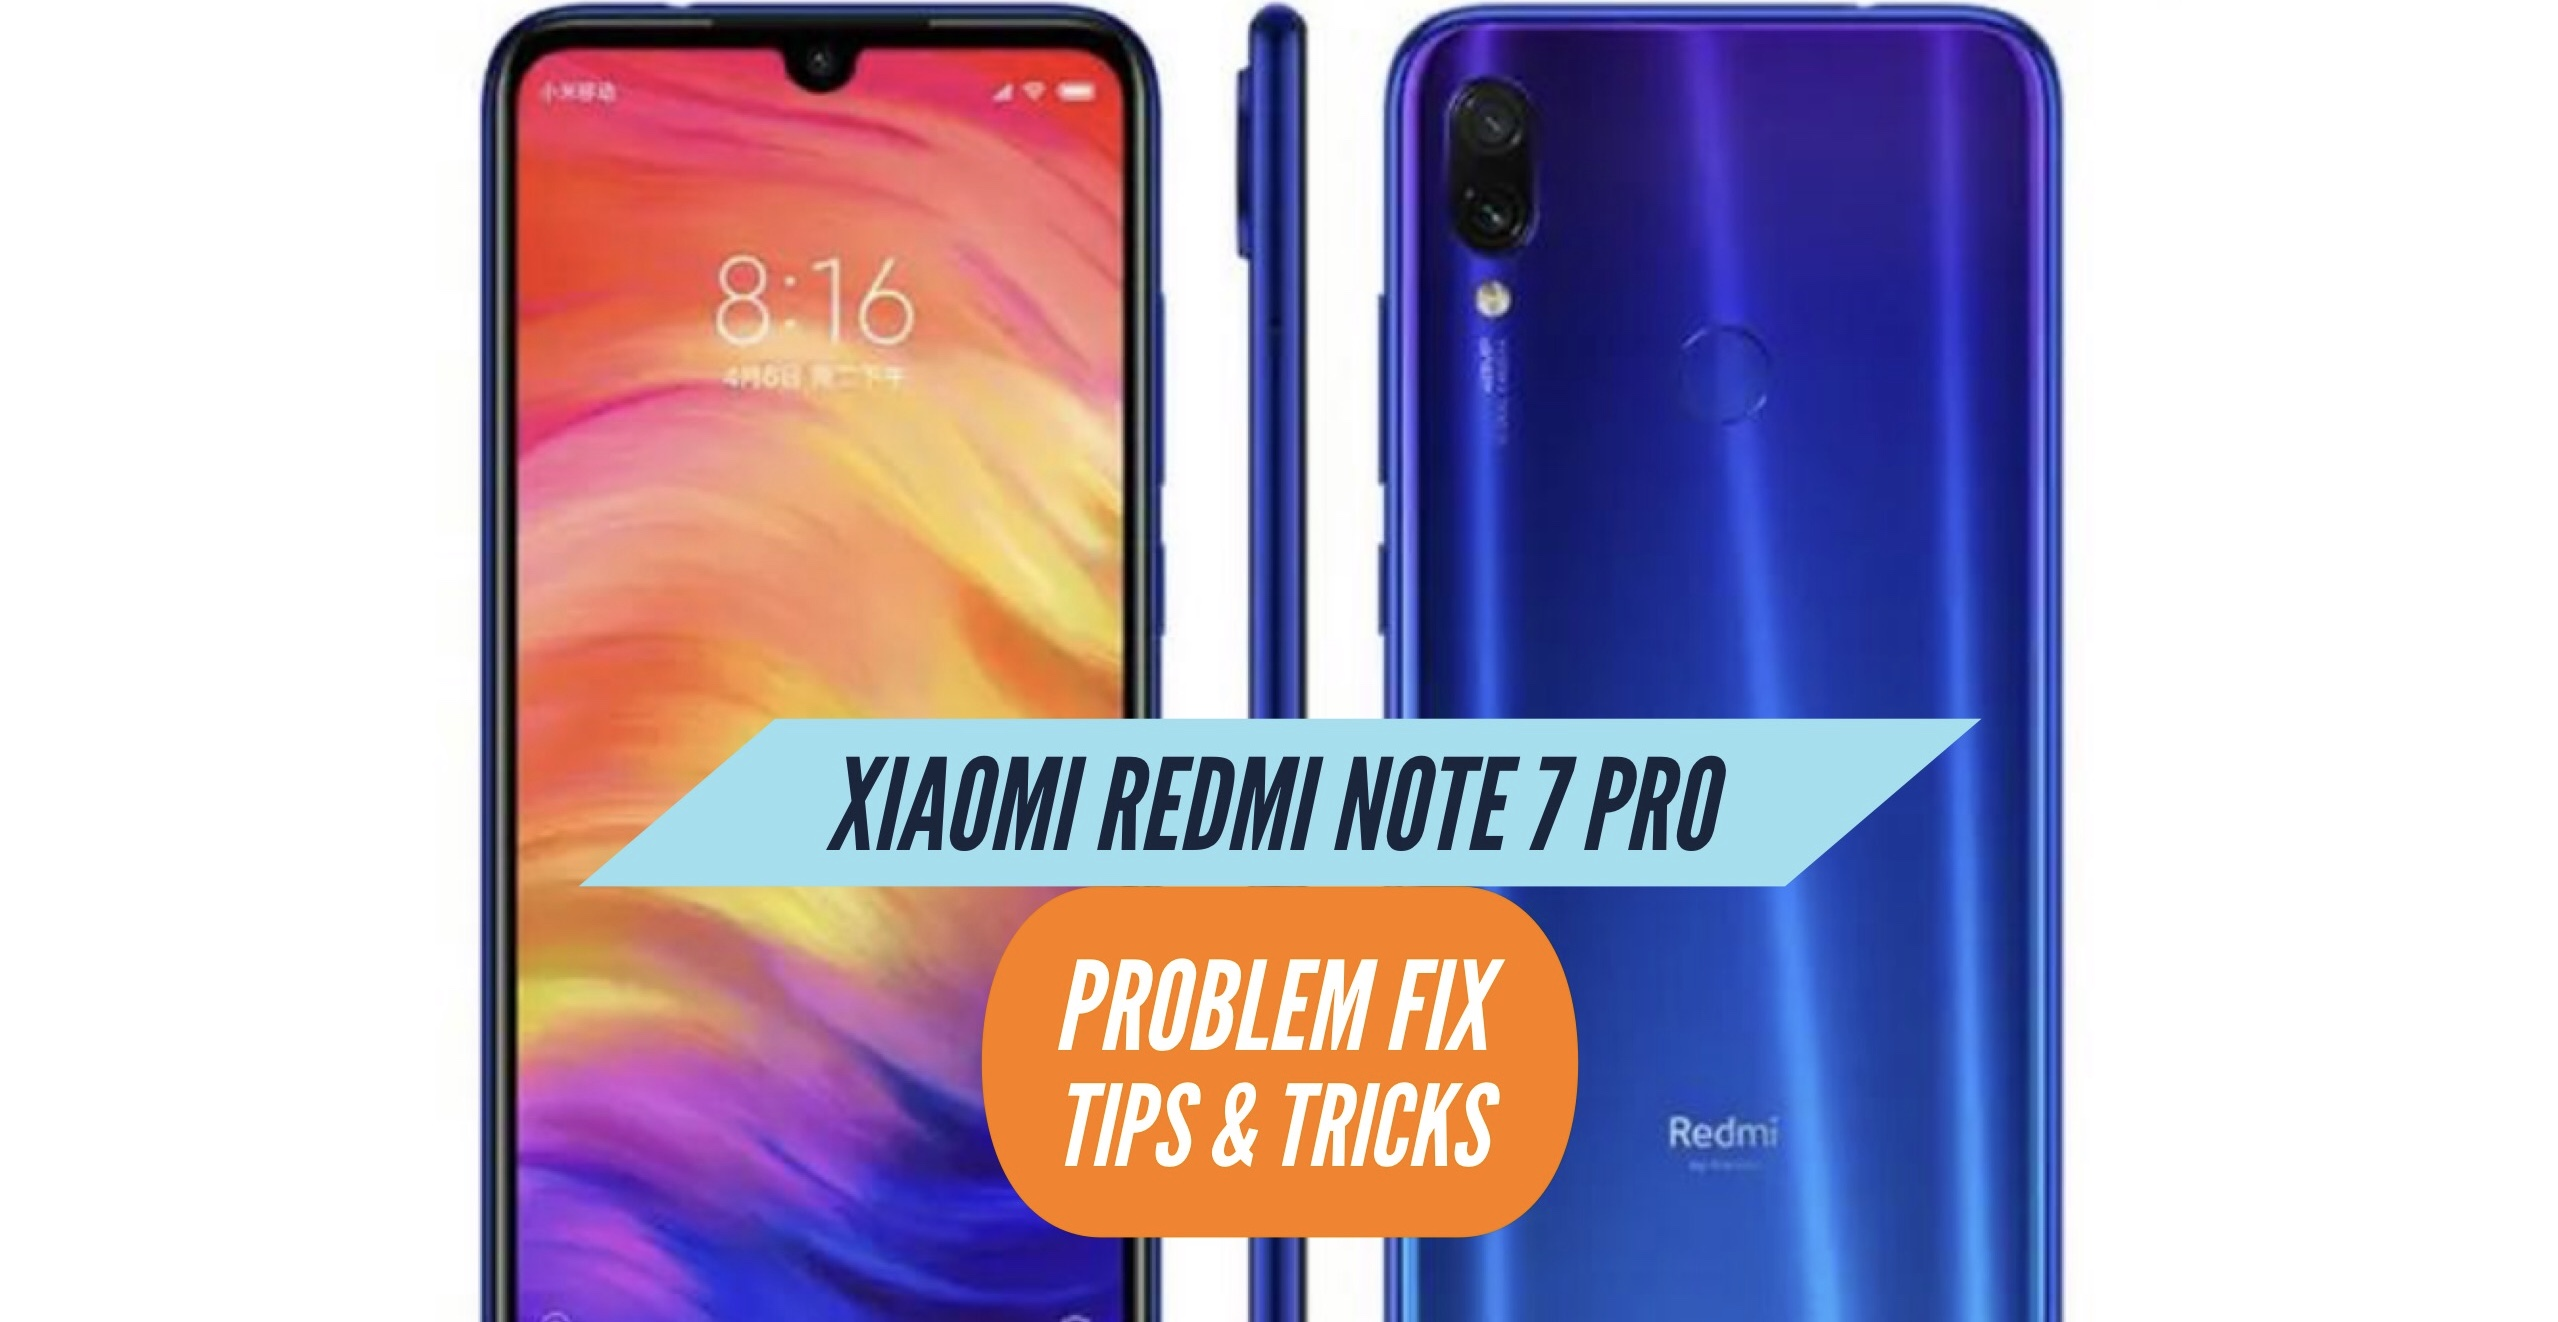 Redmi Note 7 Pro Most Common Problems & Issues + Solution Fix - Tips